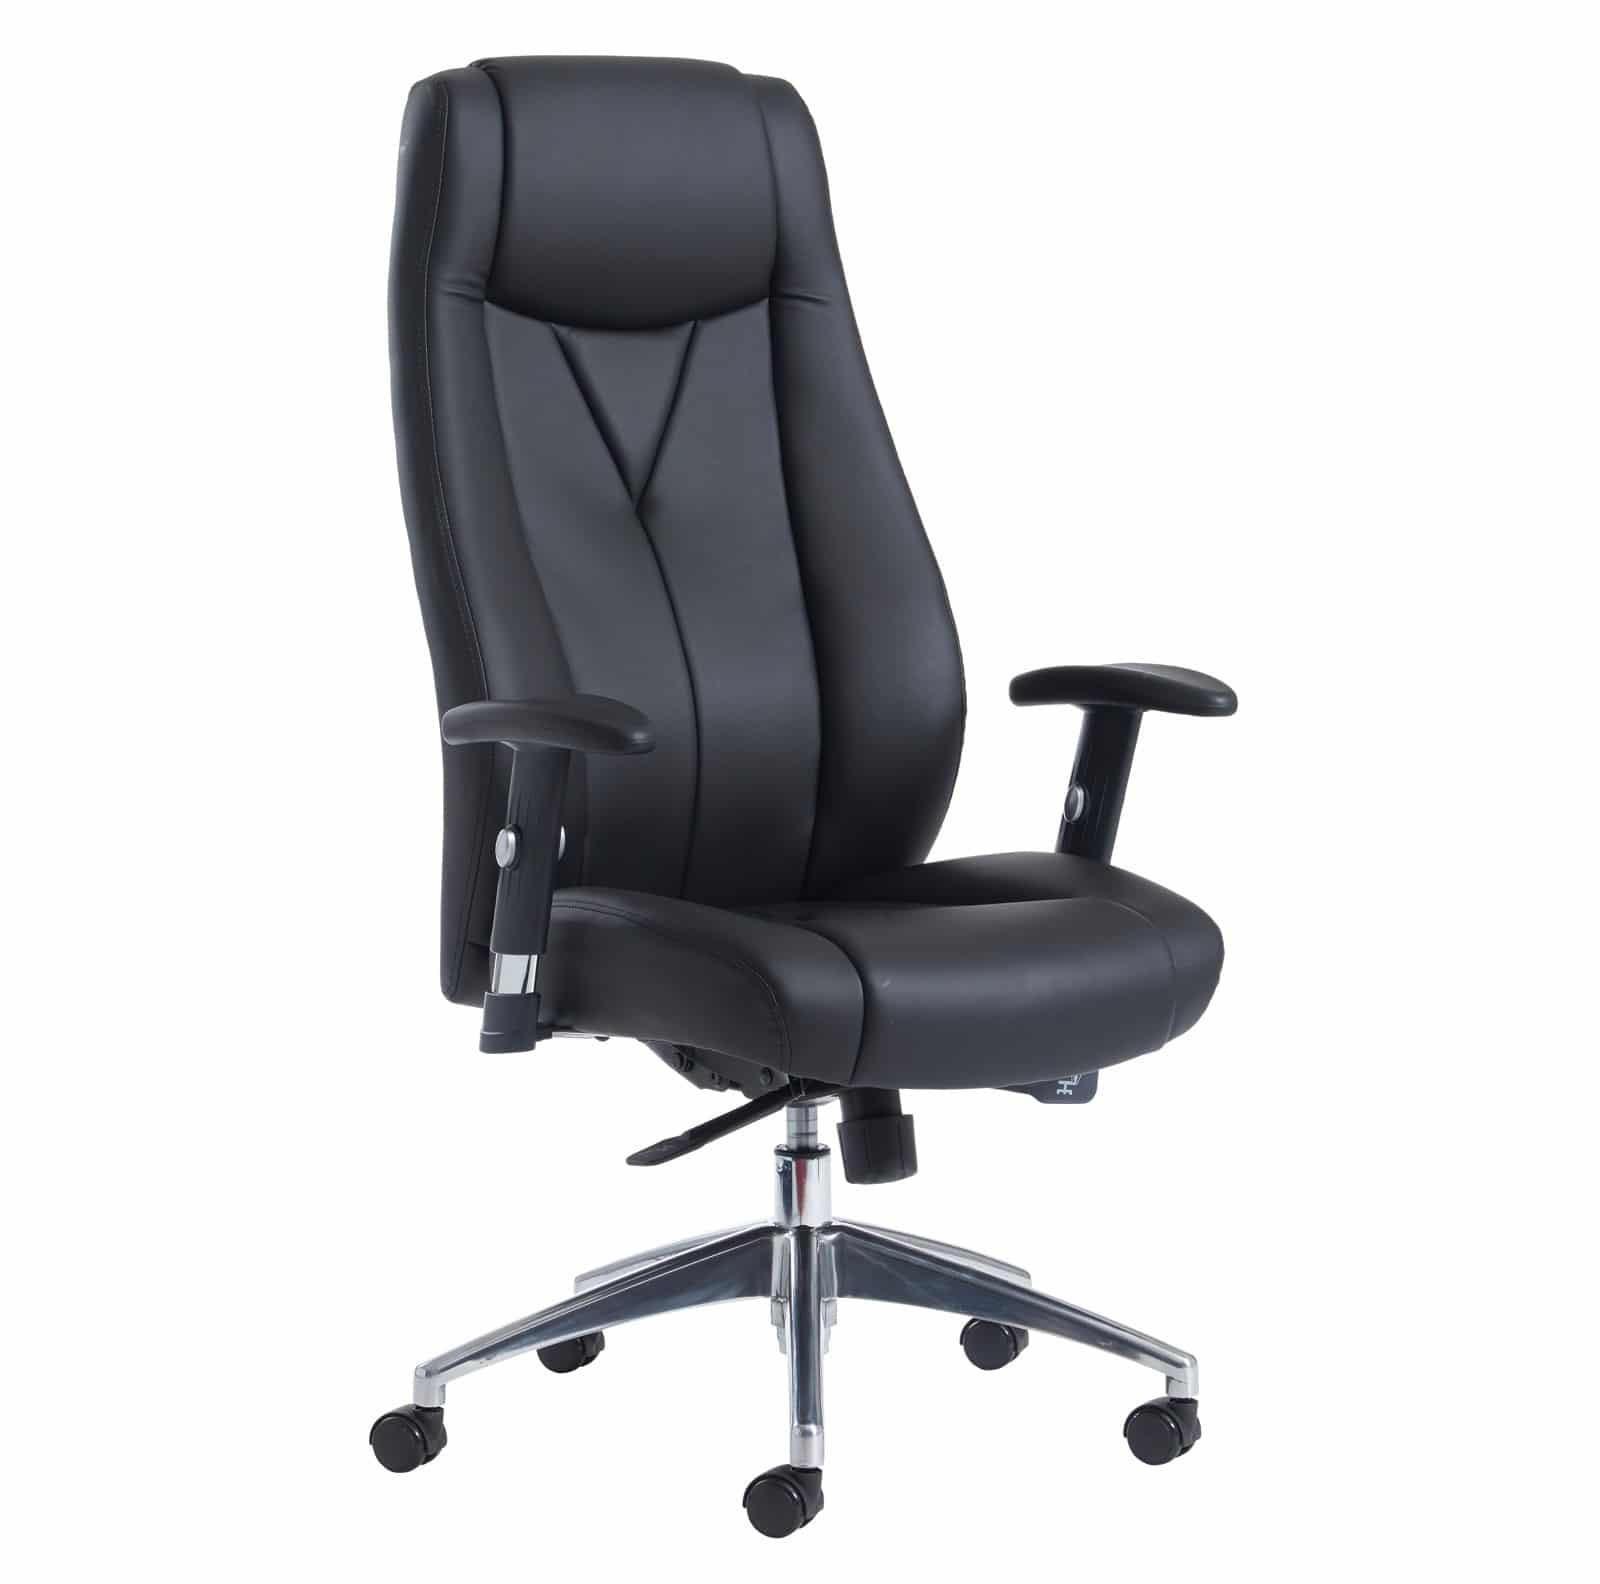 office chair replacement base sitting on a balance ball instead of odessa high back executive adjustable armrests